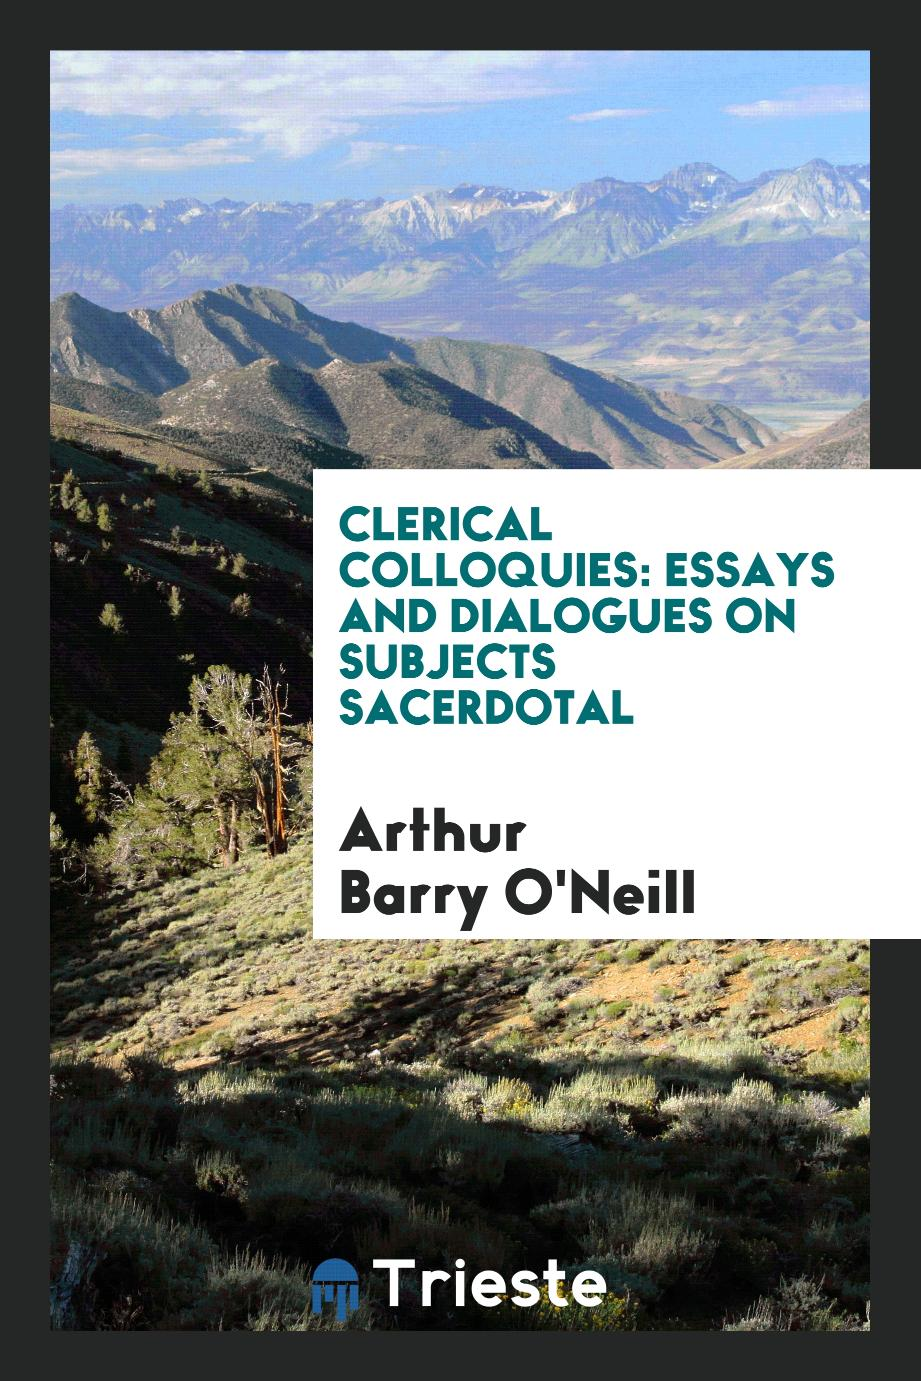 Clerical colloquies: essays and dialogues on subjects sacerdotal